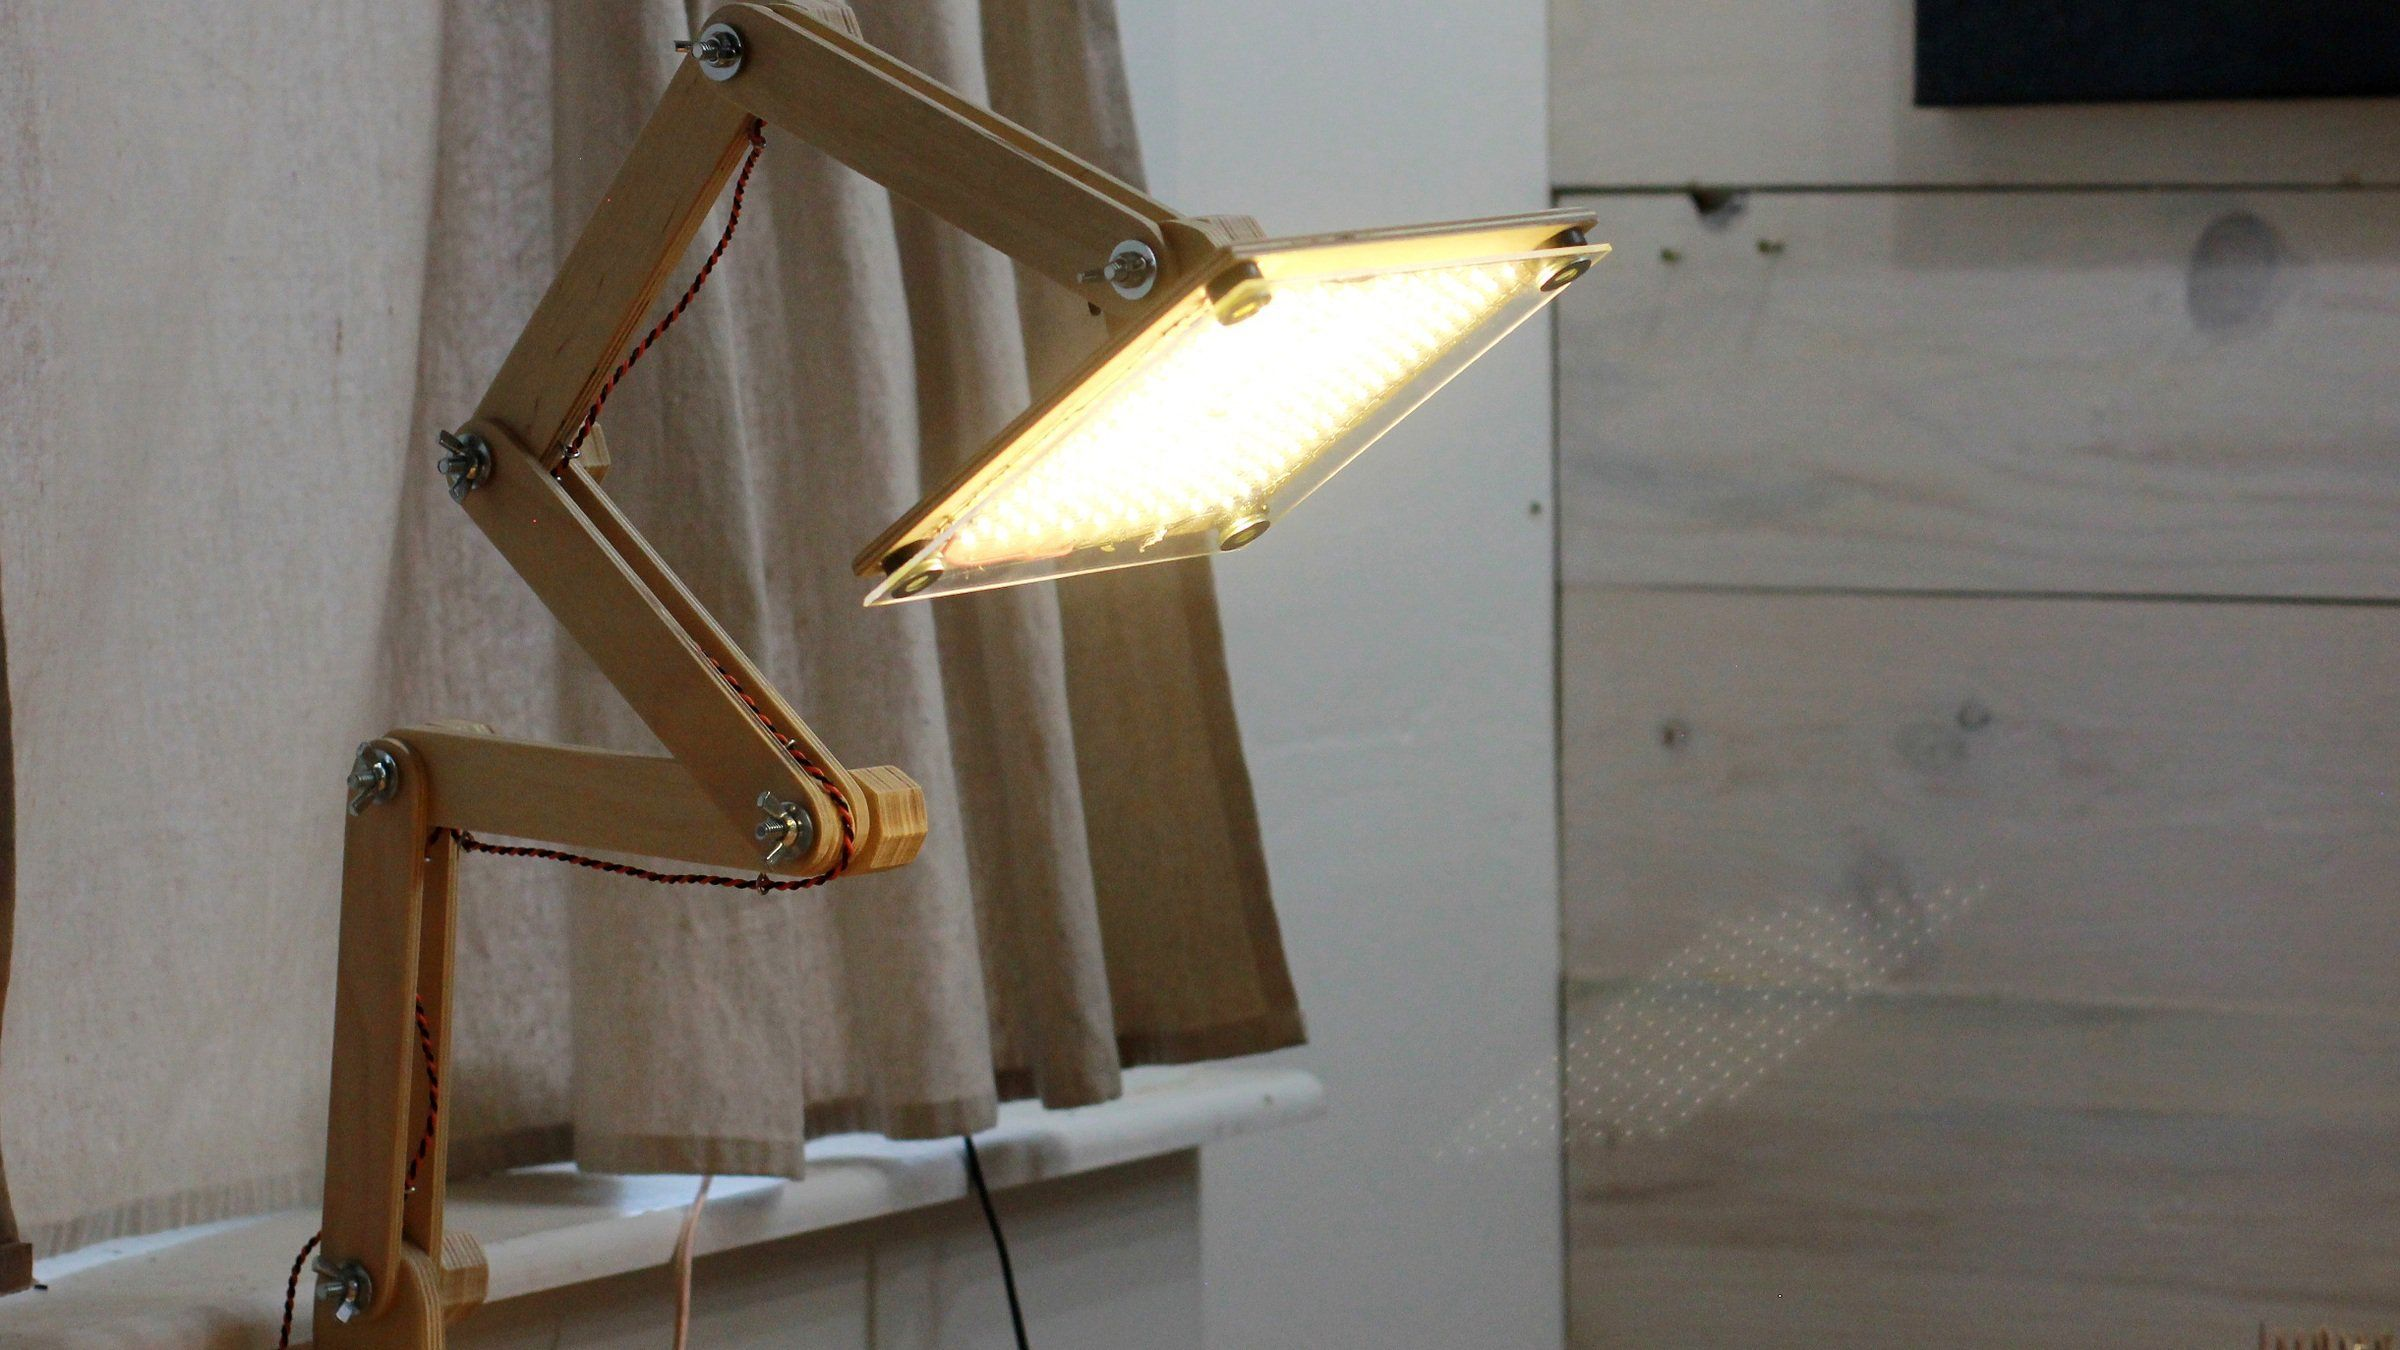 Darbin Orvar: A Minimalist Articulated LED Lamp